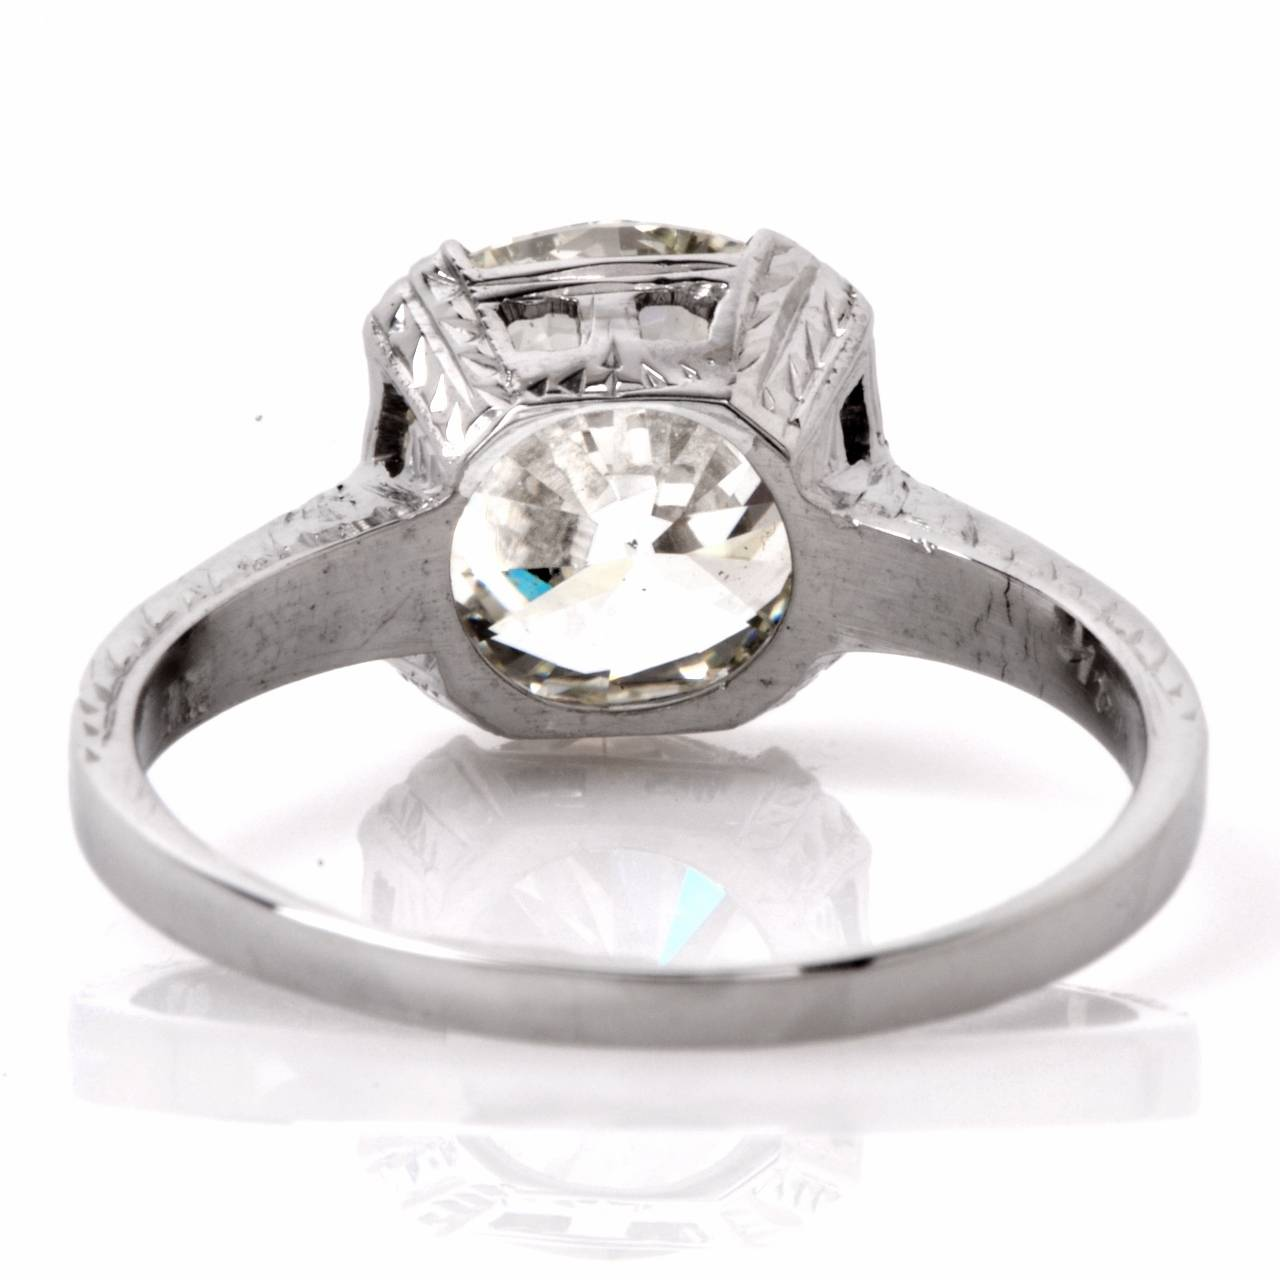 Women's EGL Certified 2.70 Carat Diamond Gold Solitaire Engagement Ring For Sale